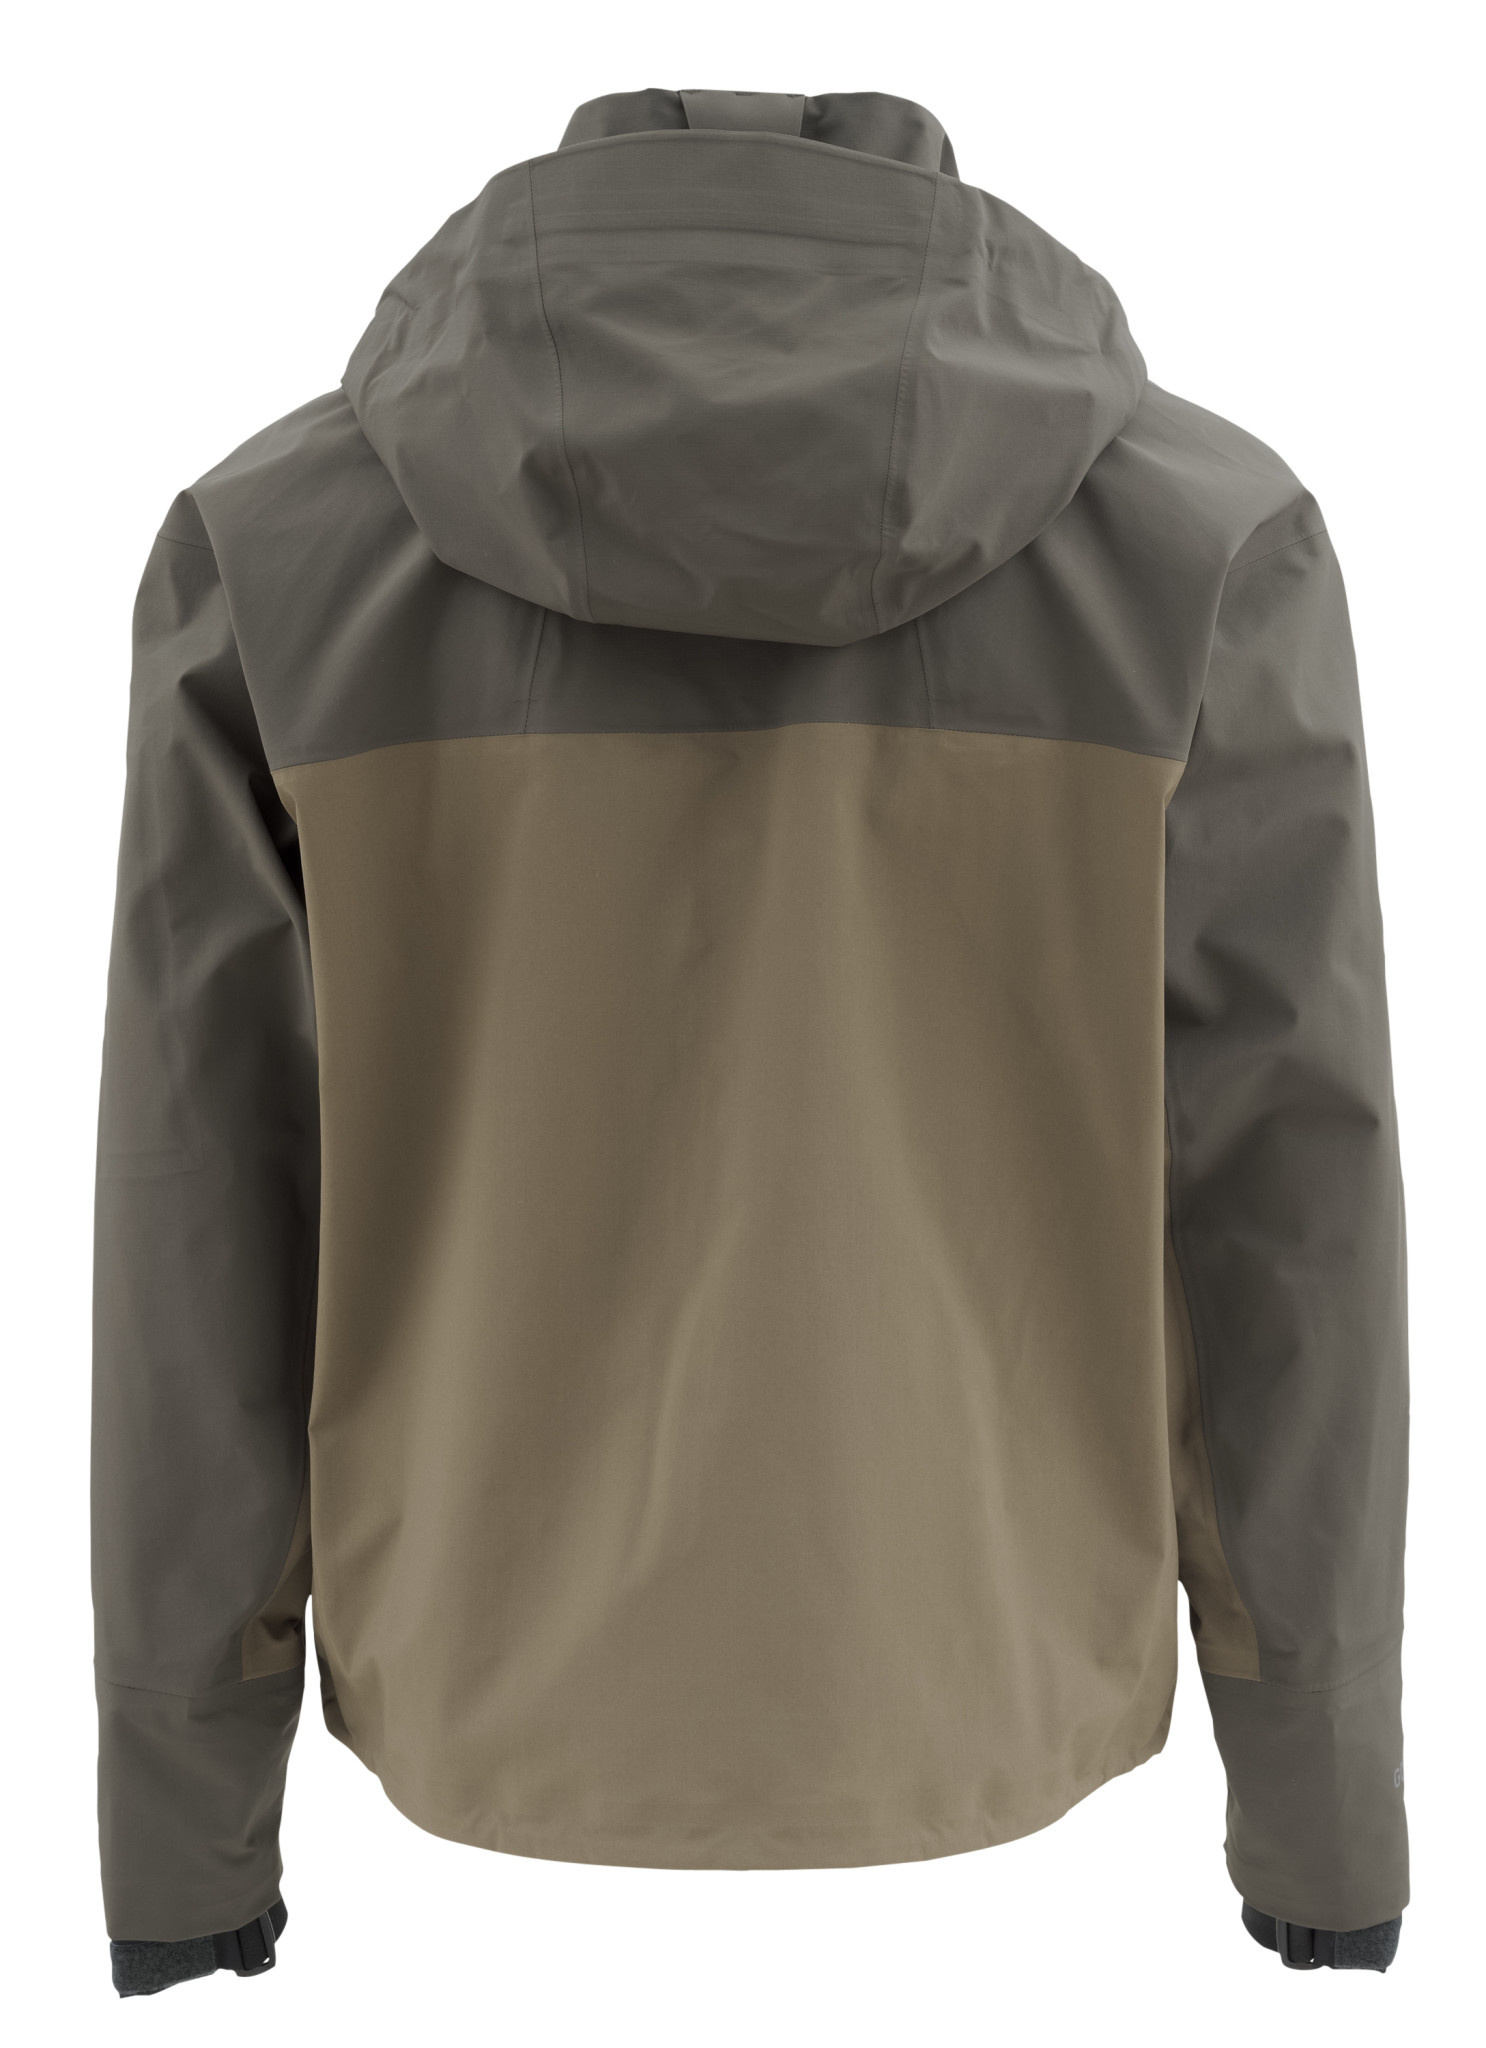 Simms Simms G3 Guide Tactical Jacket - 30% OFF SALE